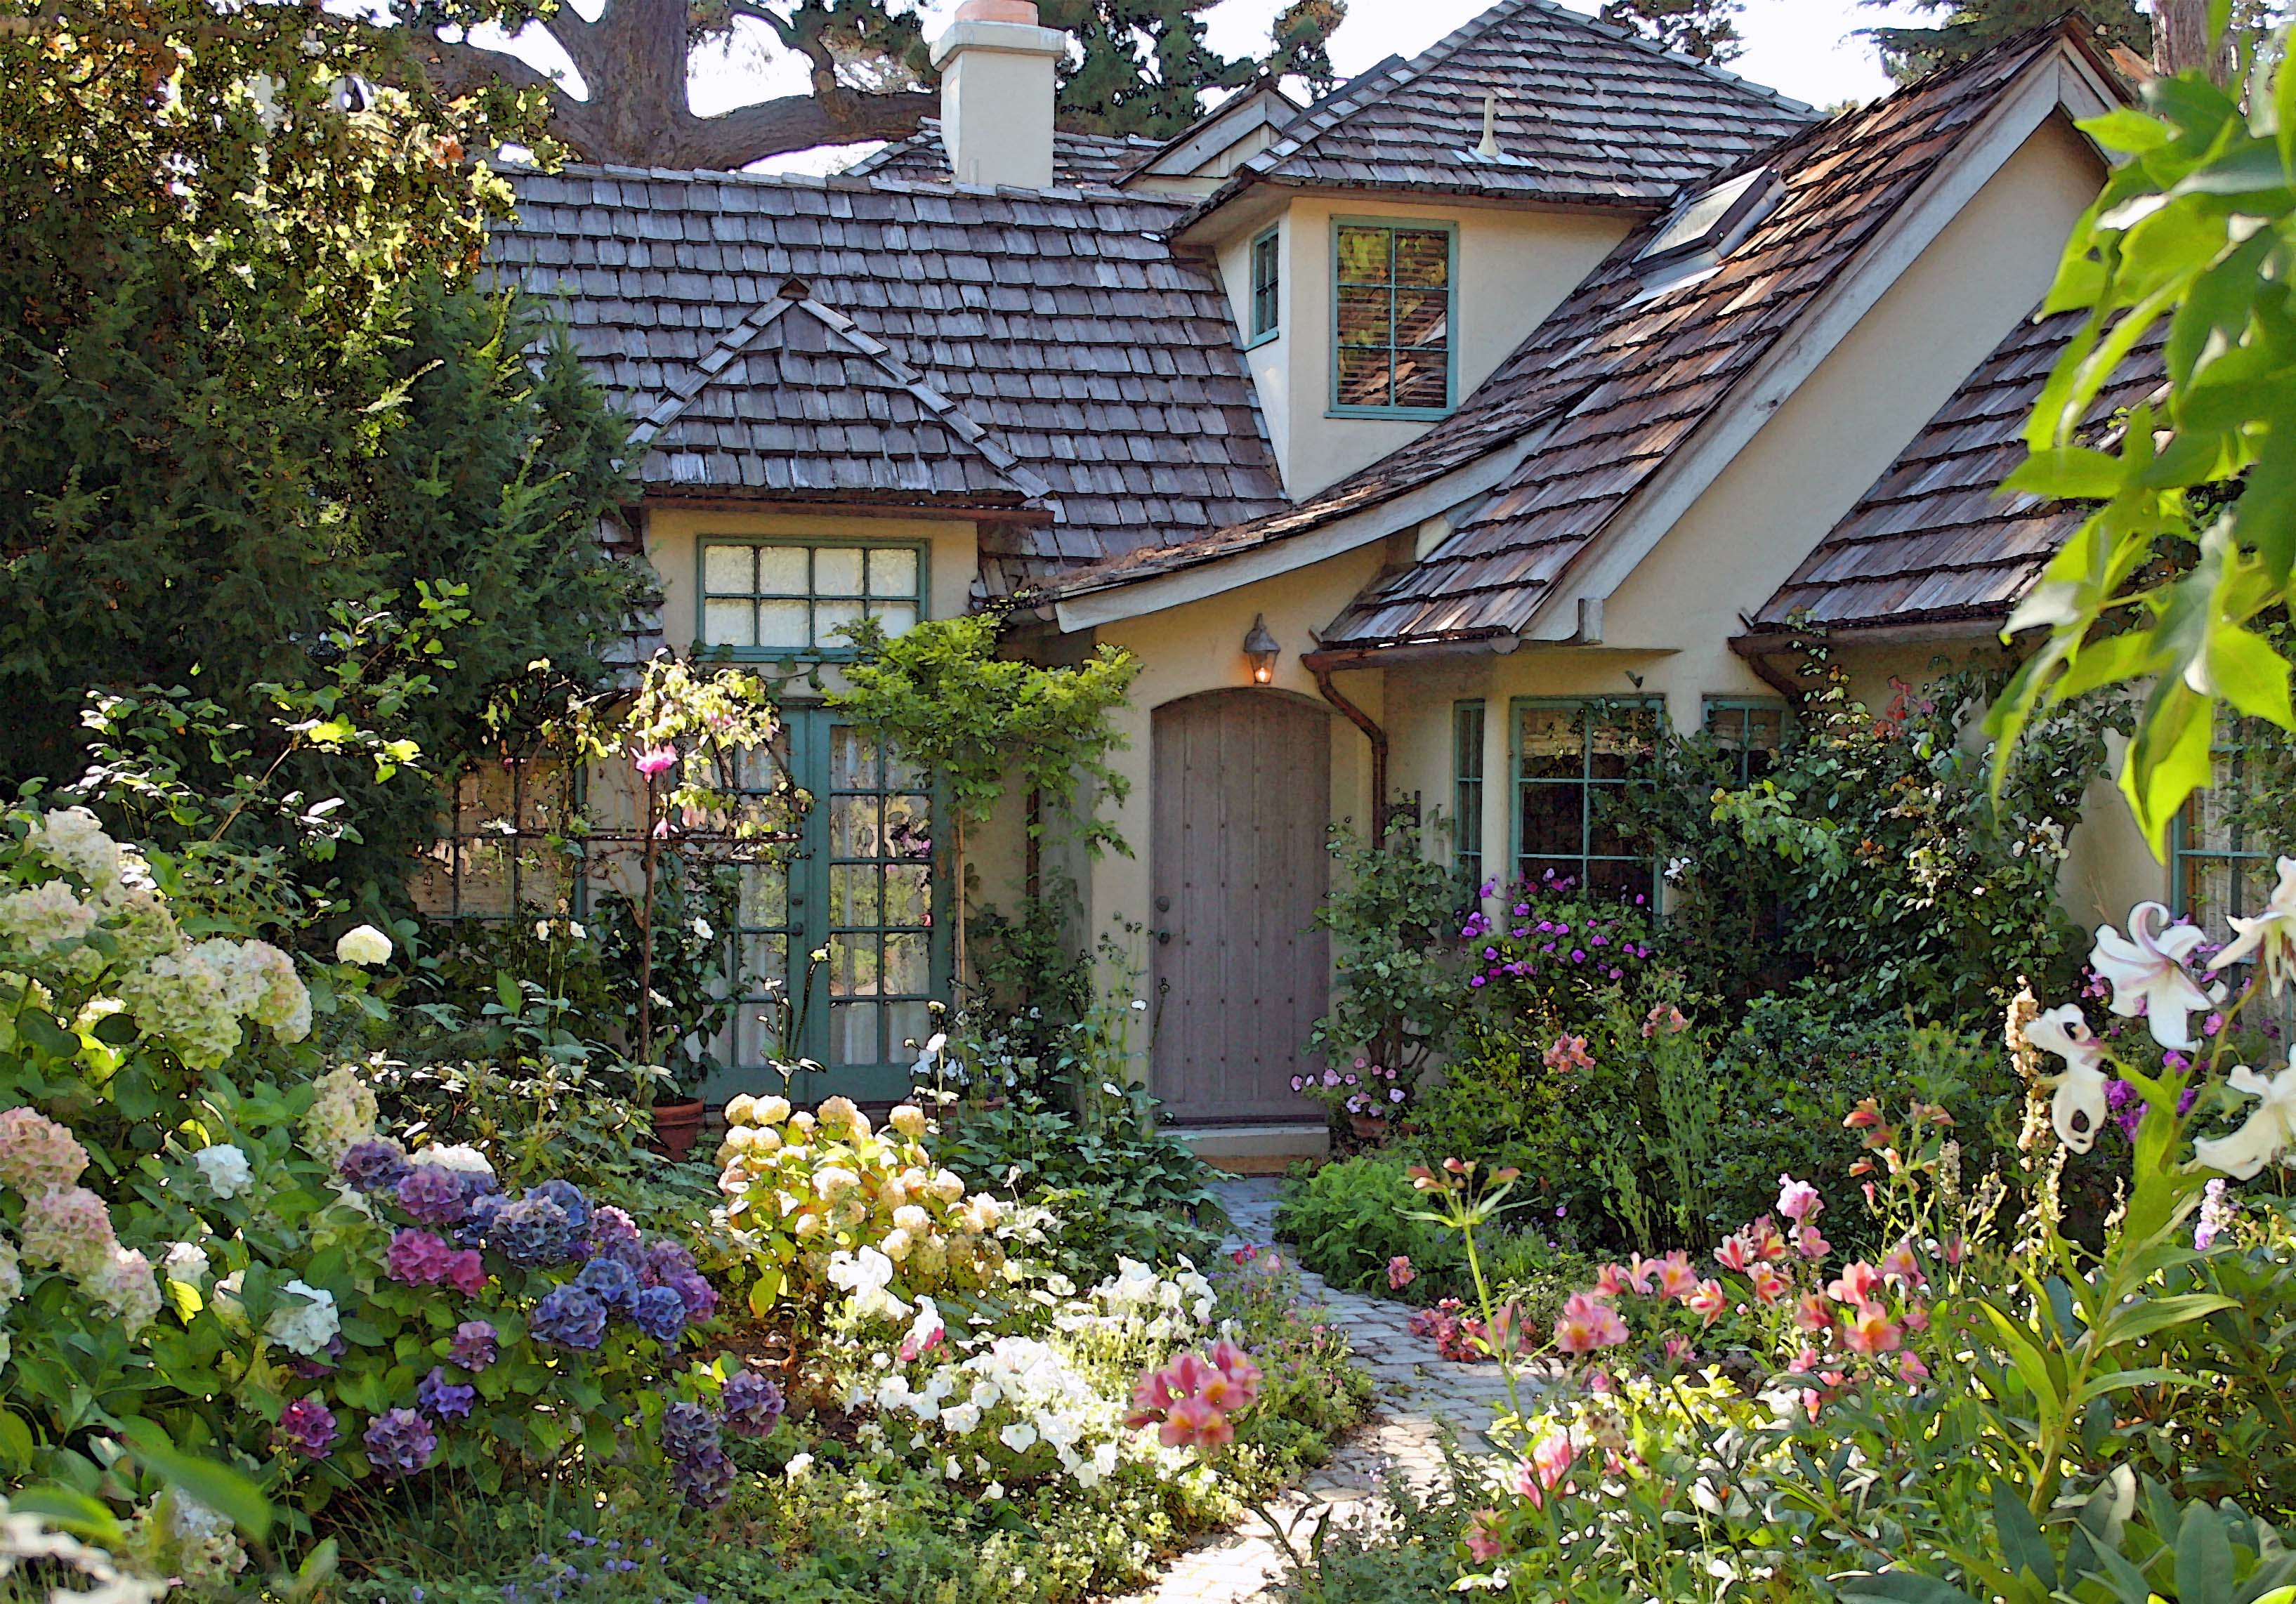 I tour the carmel garden of teri winton once upon a time Cottage and home